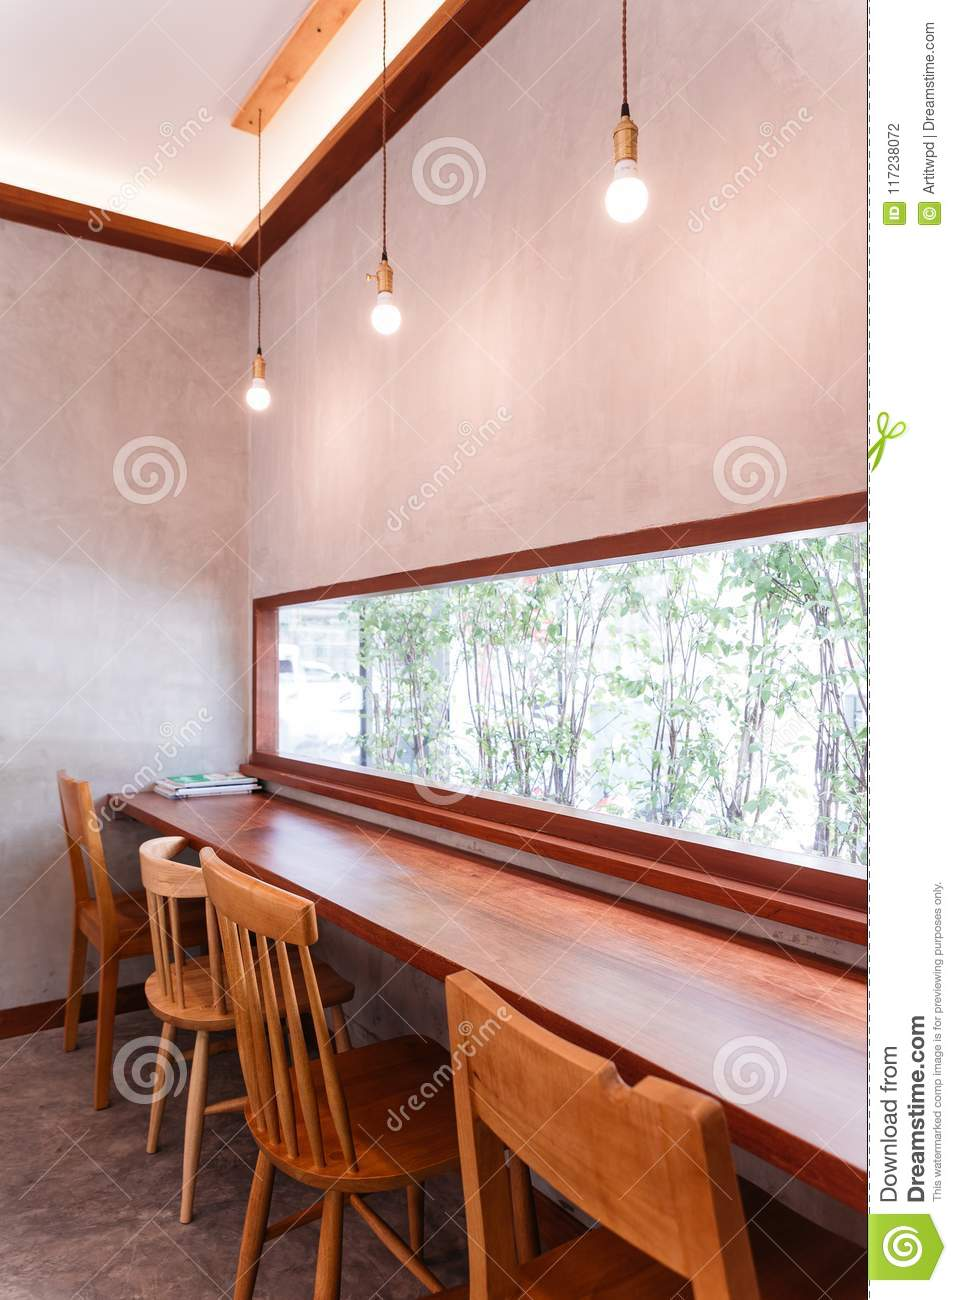 Picture of: Long Wooden Table With Wooden Chairs That Can See Outside Through The Glass Window At The Dessert Cafe Stock Photo Image Of Concept Home 117238072